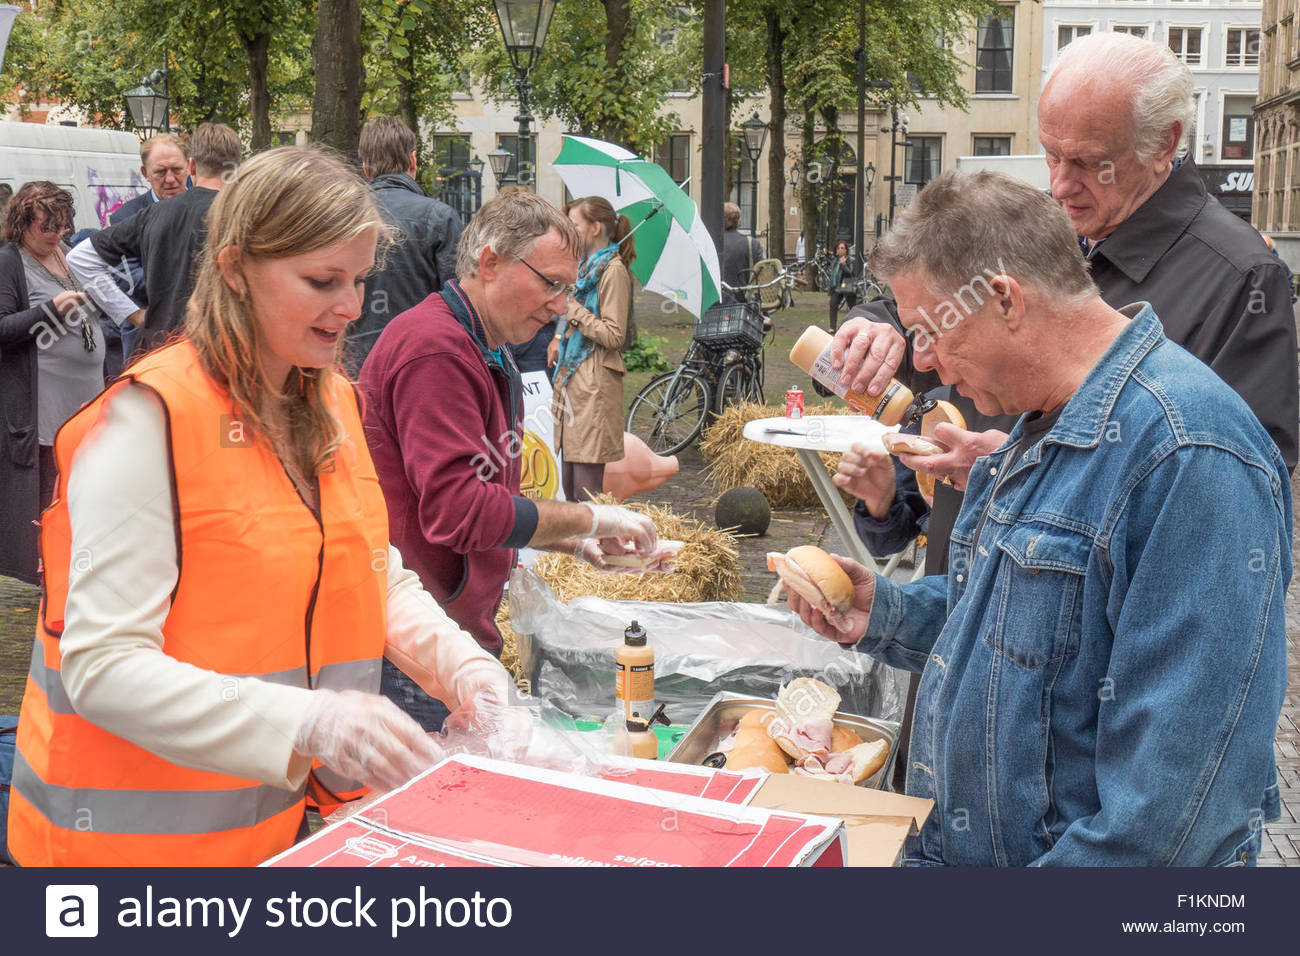 Pig farmers protest. - Stock Image